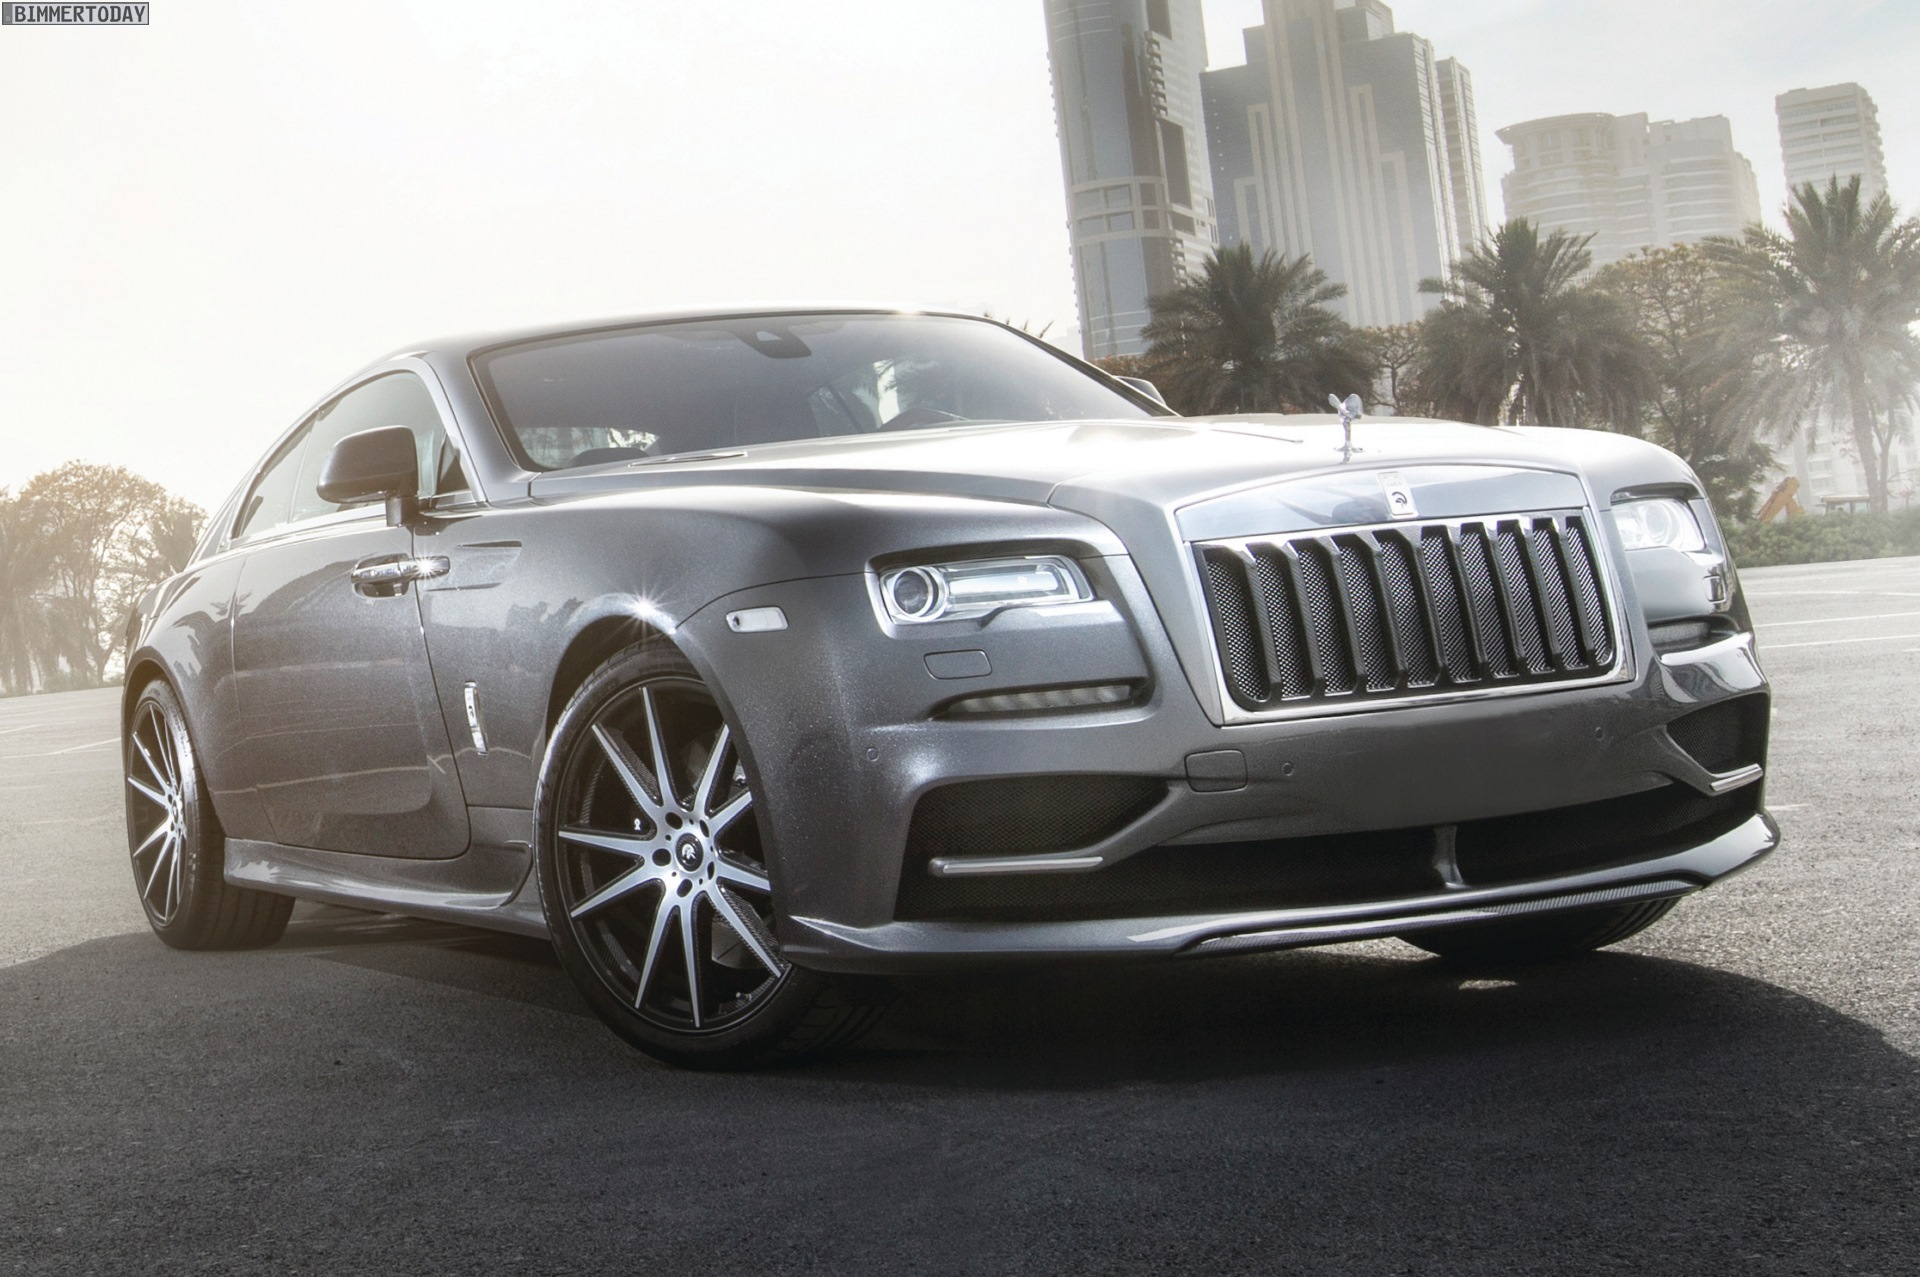 Ares Design Rolls Royce Wraith Luxury Tuning With 700 Hp